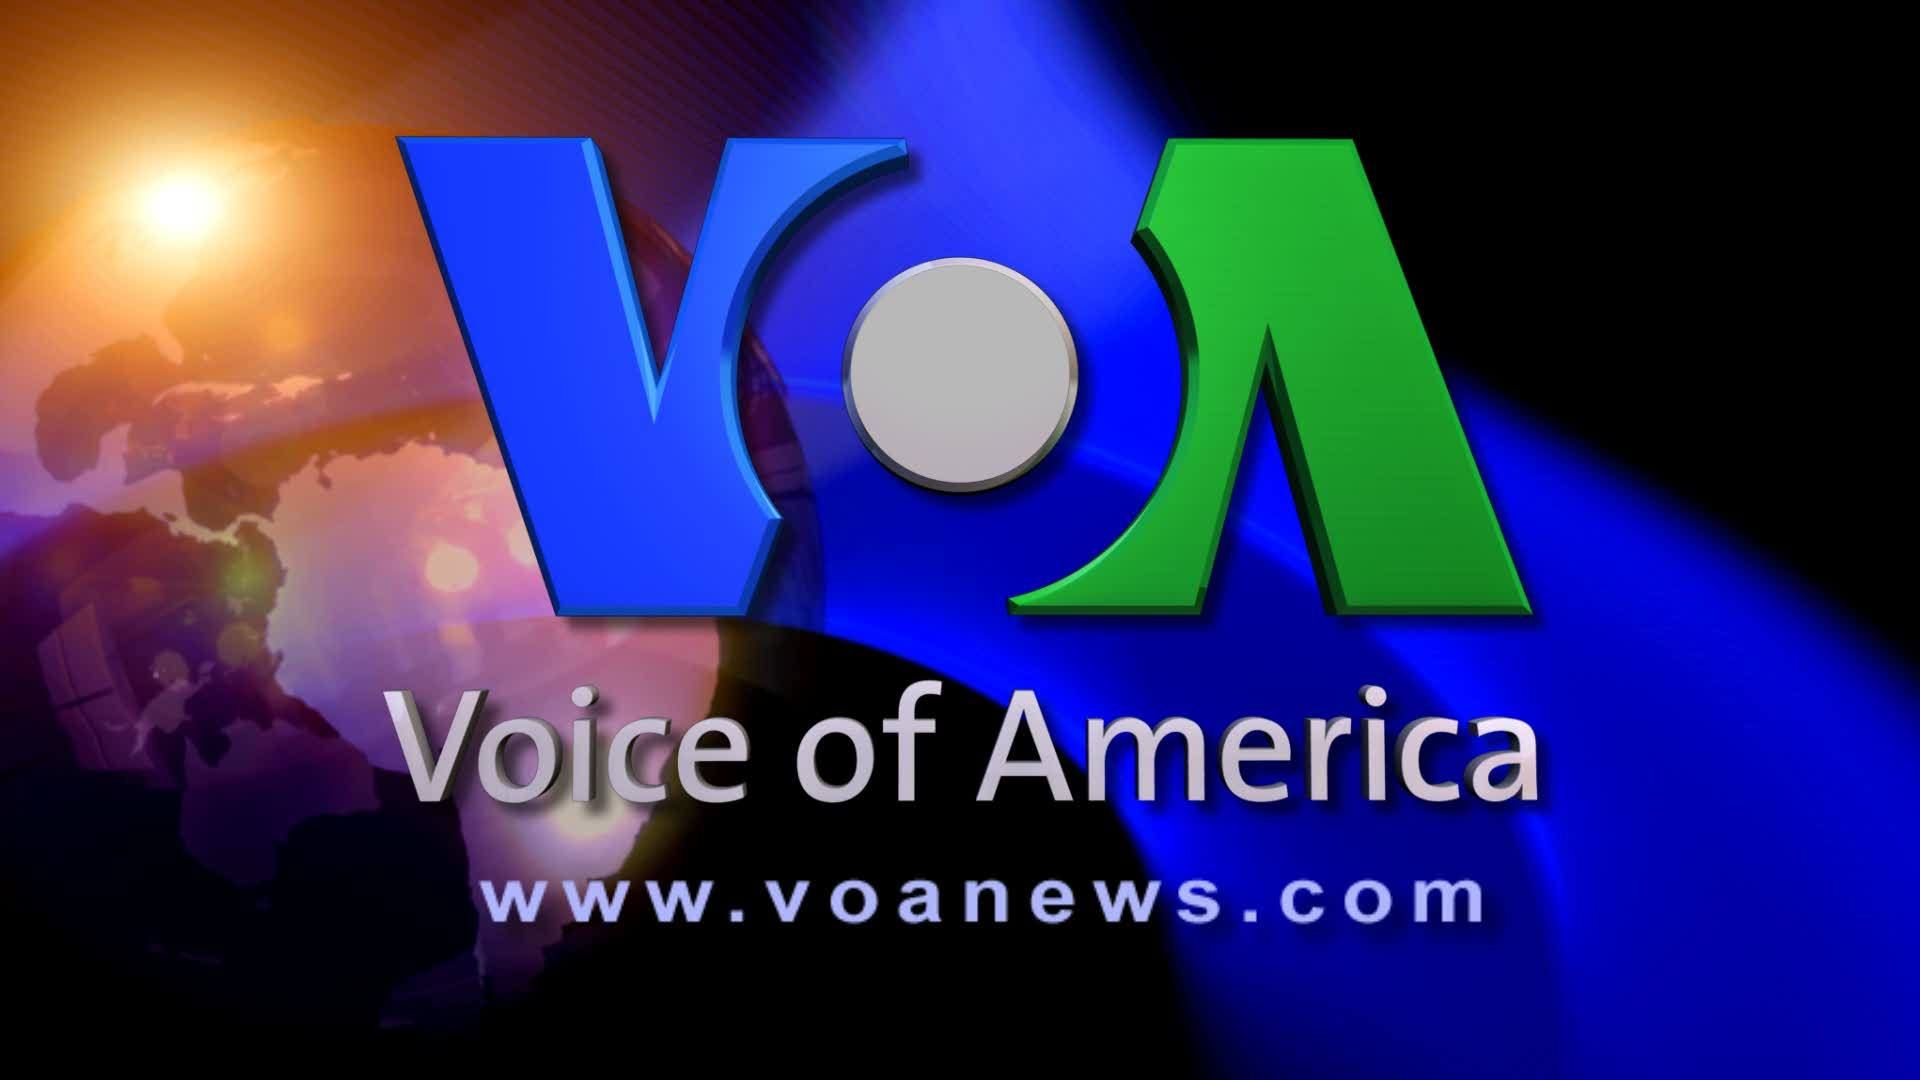 Beethoven for the Indus Valley - Voice of America TV